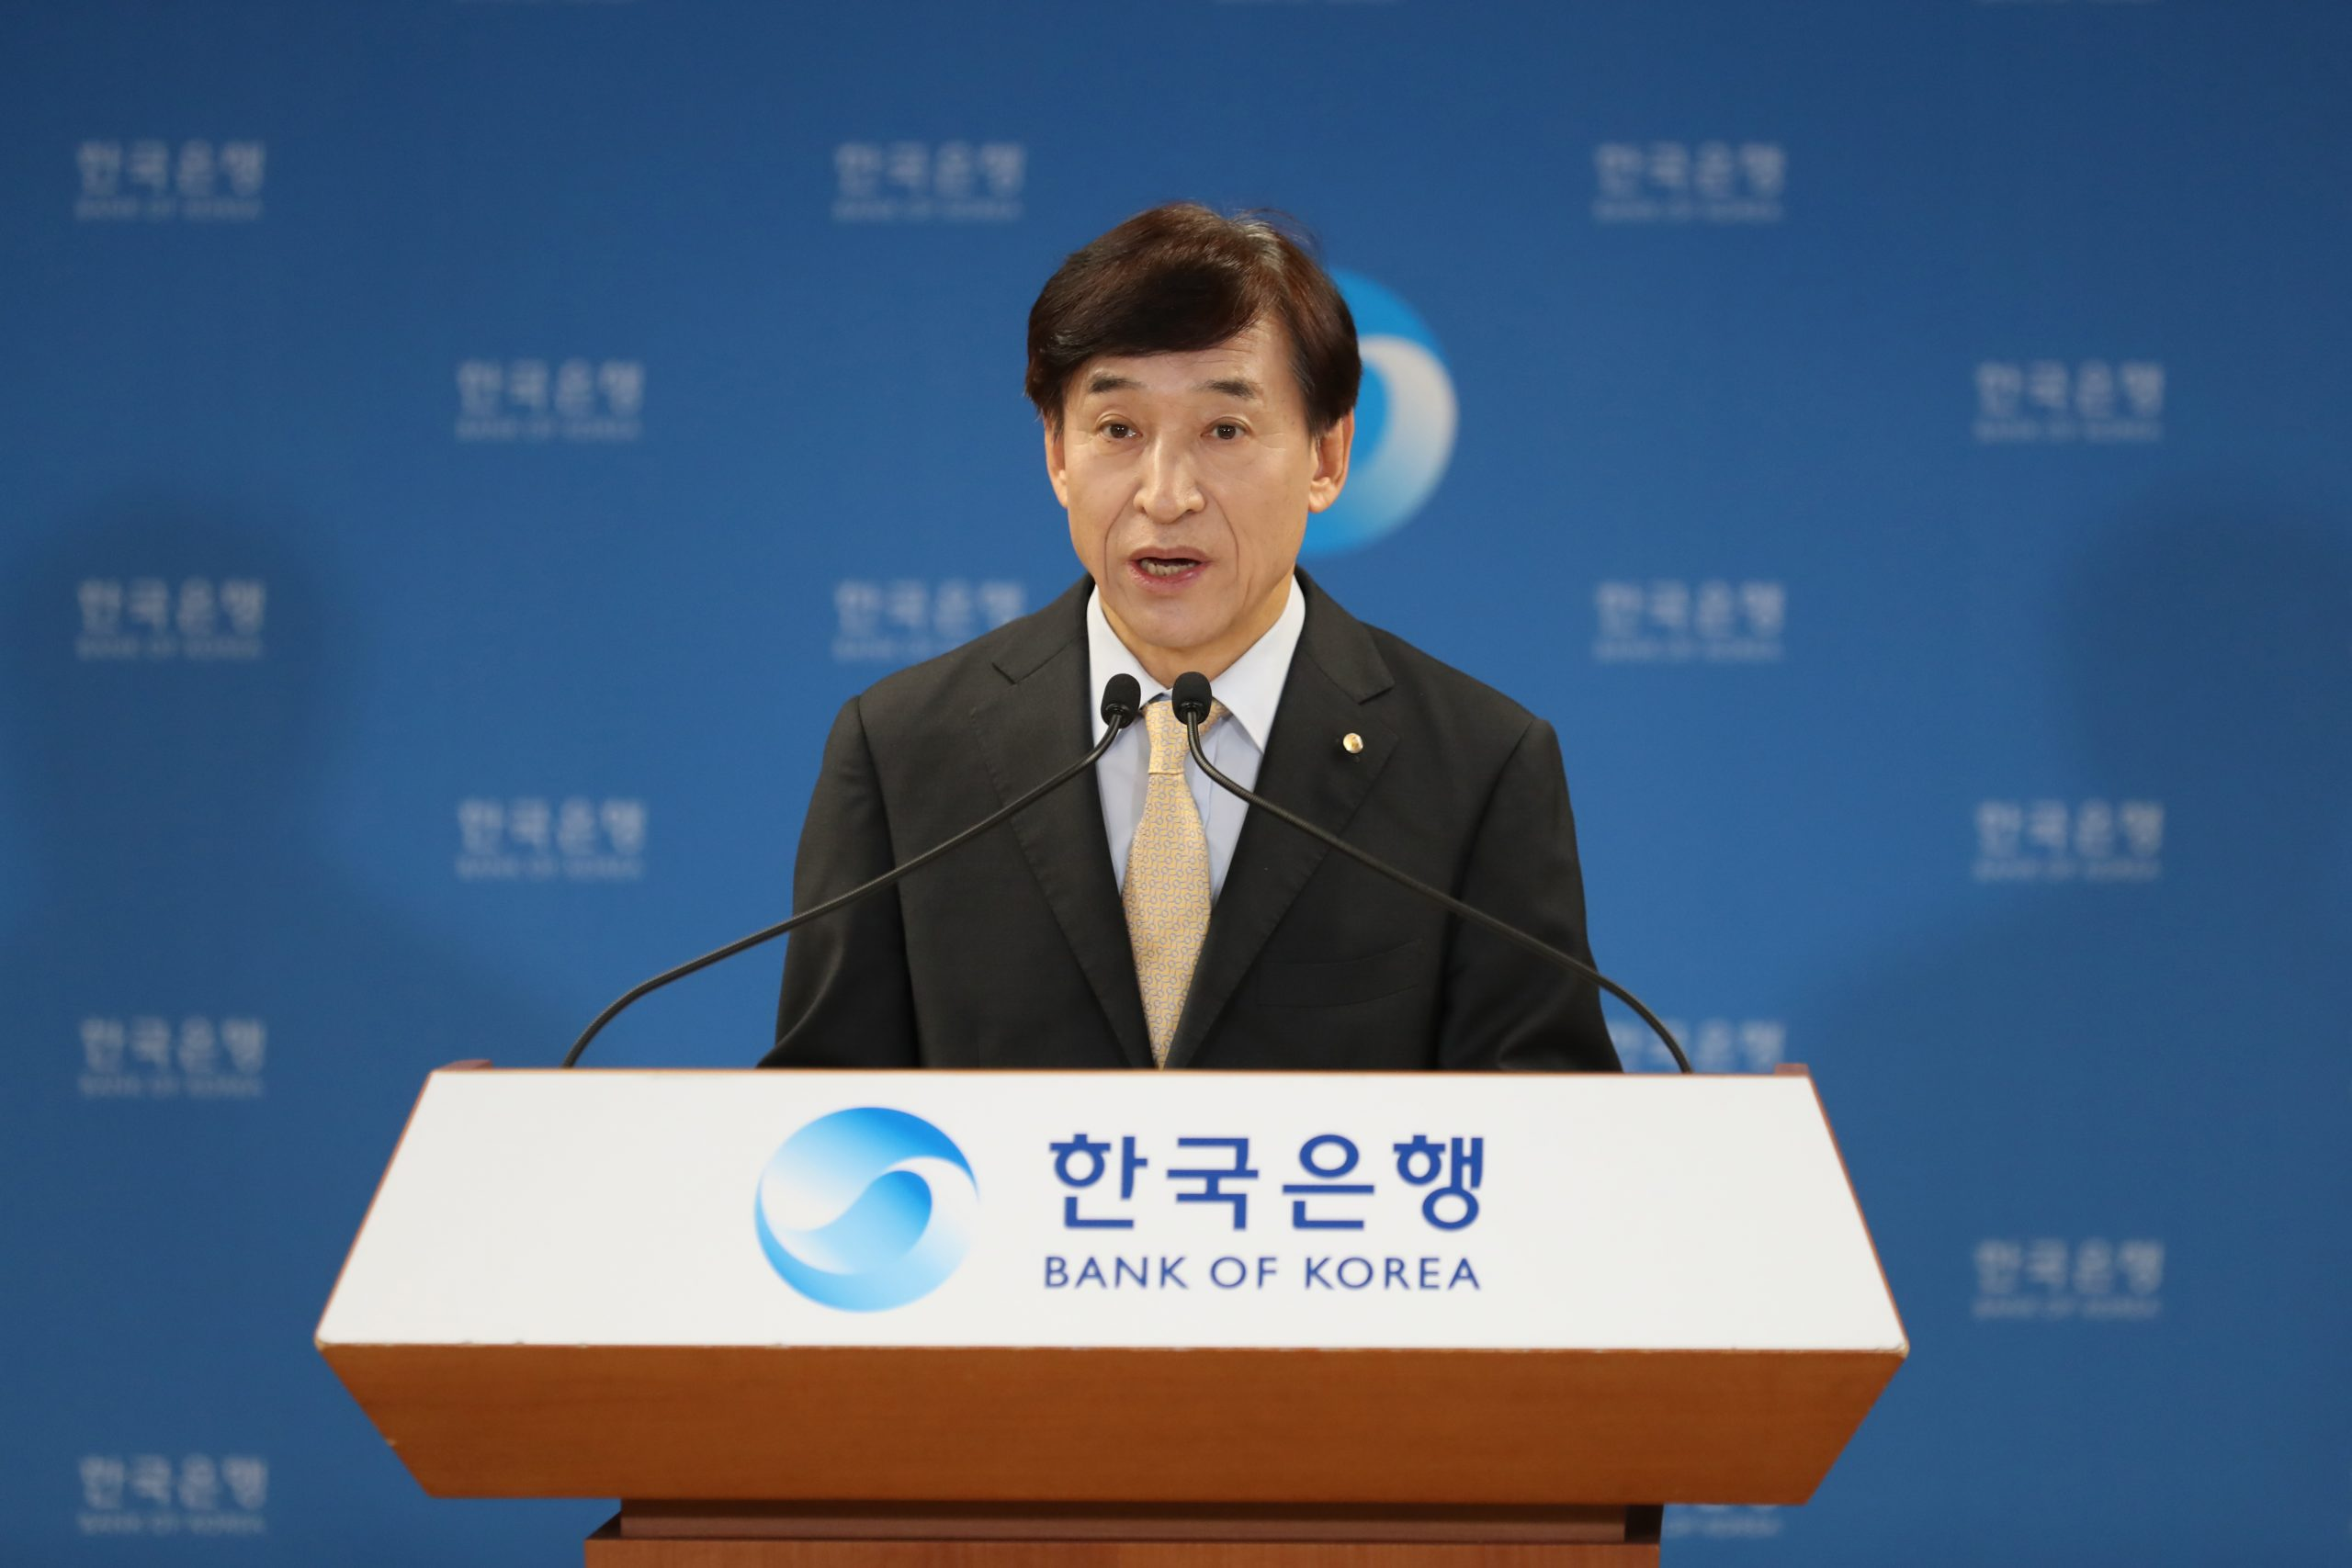 S. Korea's inflation likely to keep slow pace in post-coronavirus era: BOK